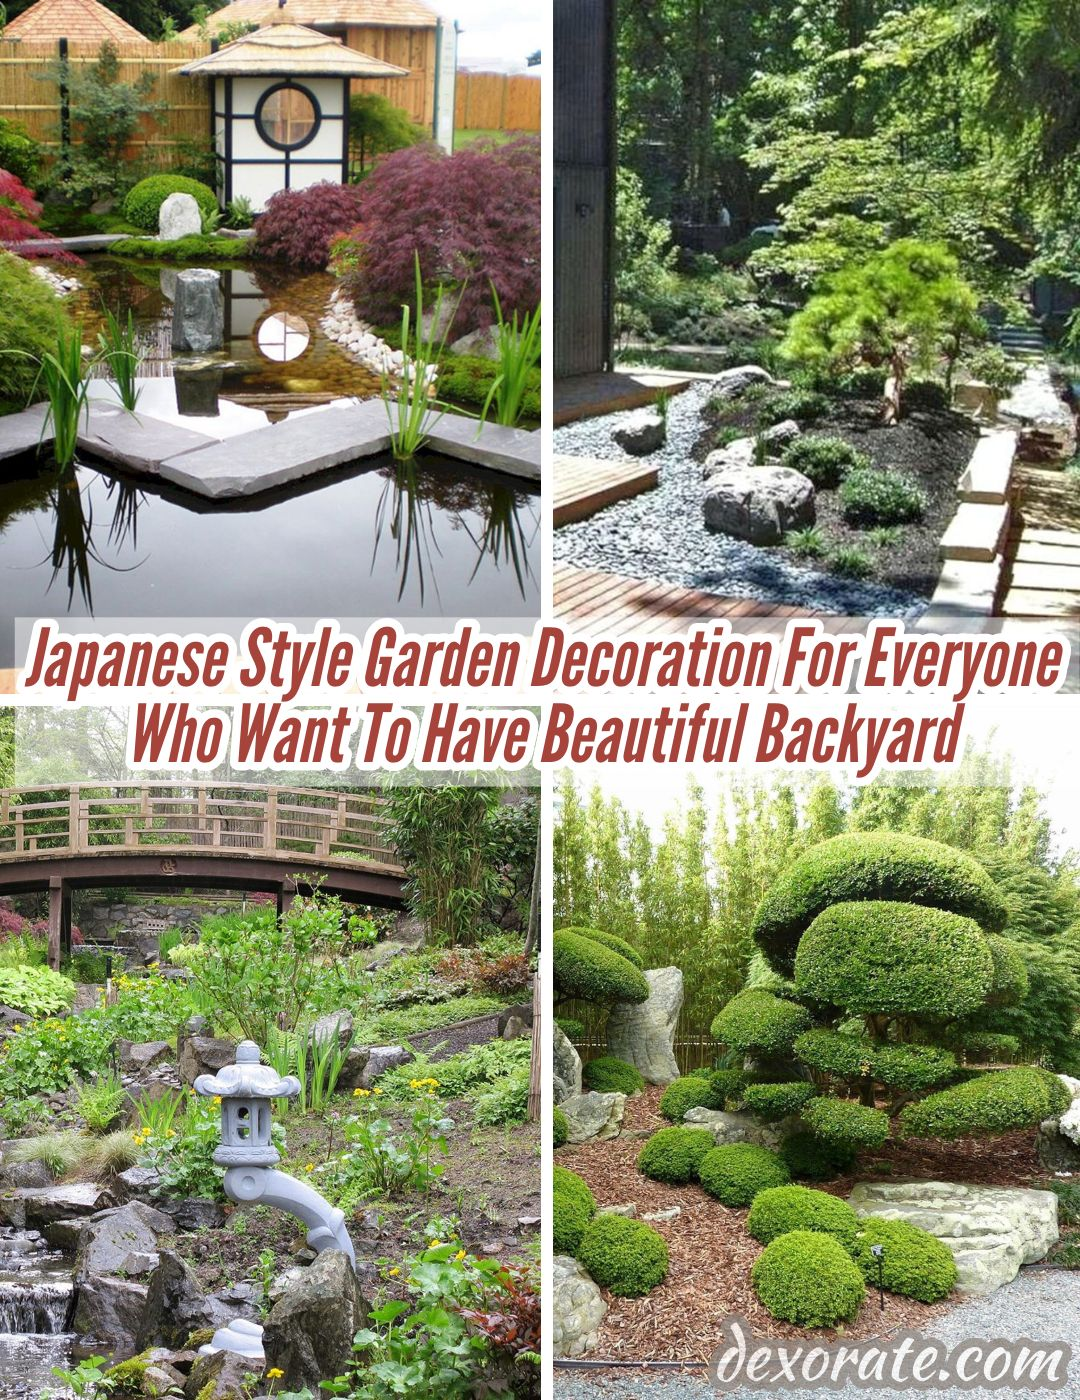 9+ Japanese Style Garden Decoration For Everyone Who Want To Have